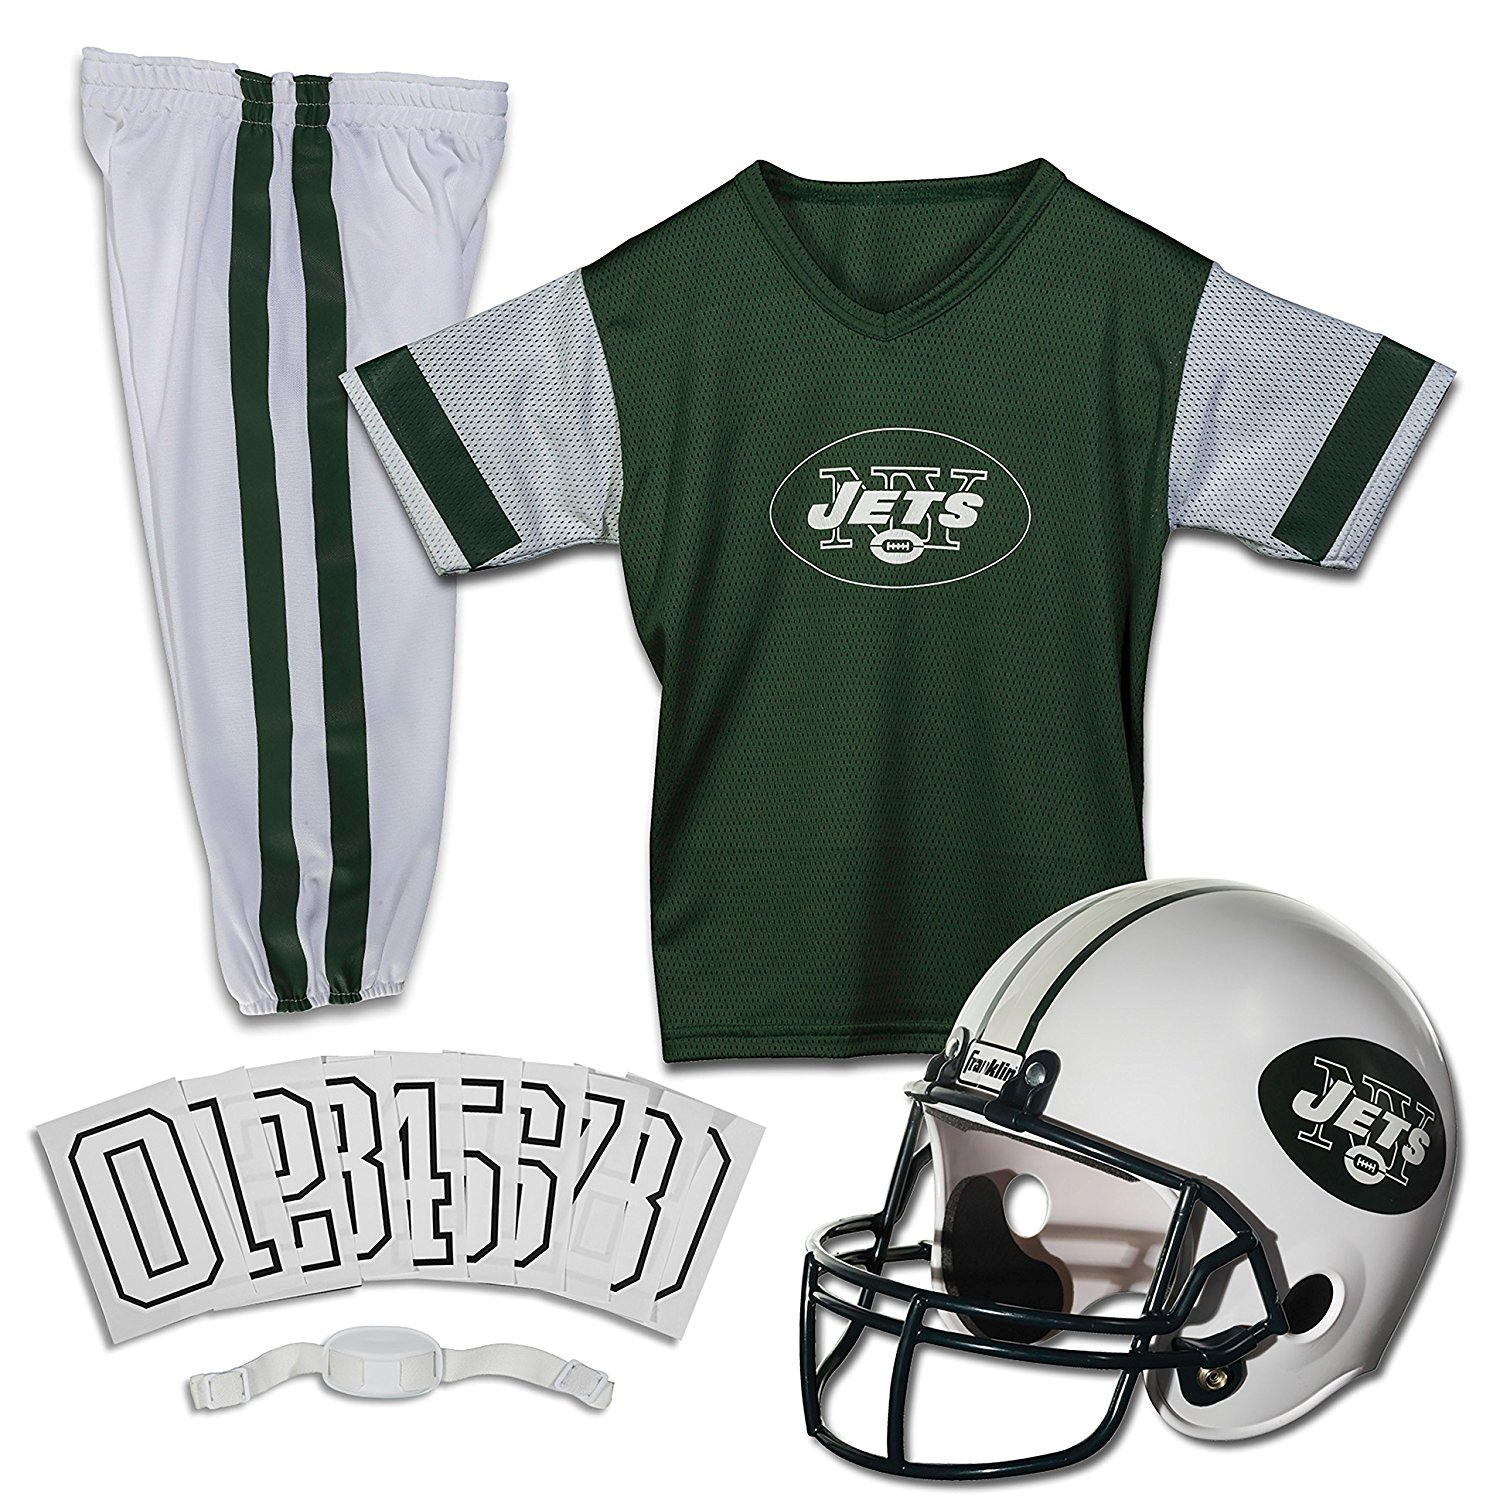 Image result for childs new york jets uniform